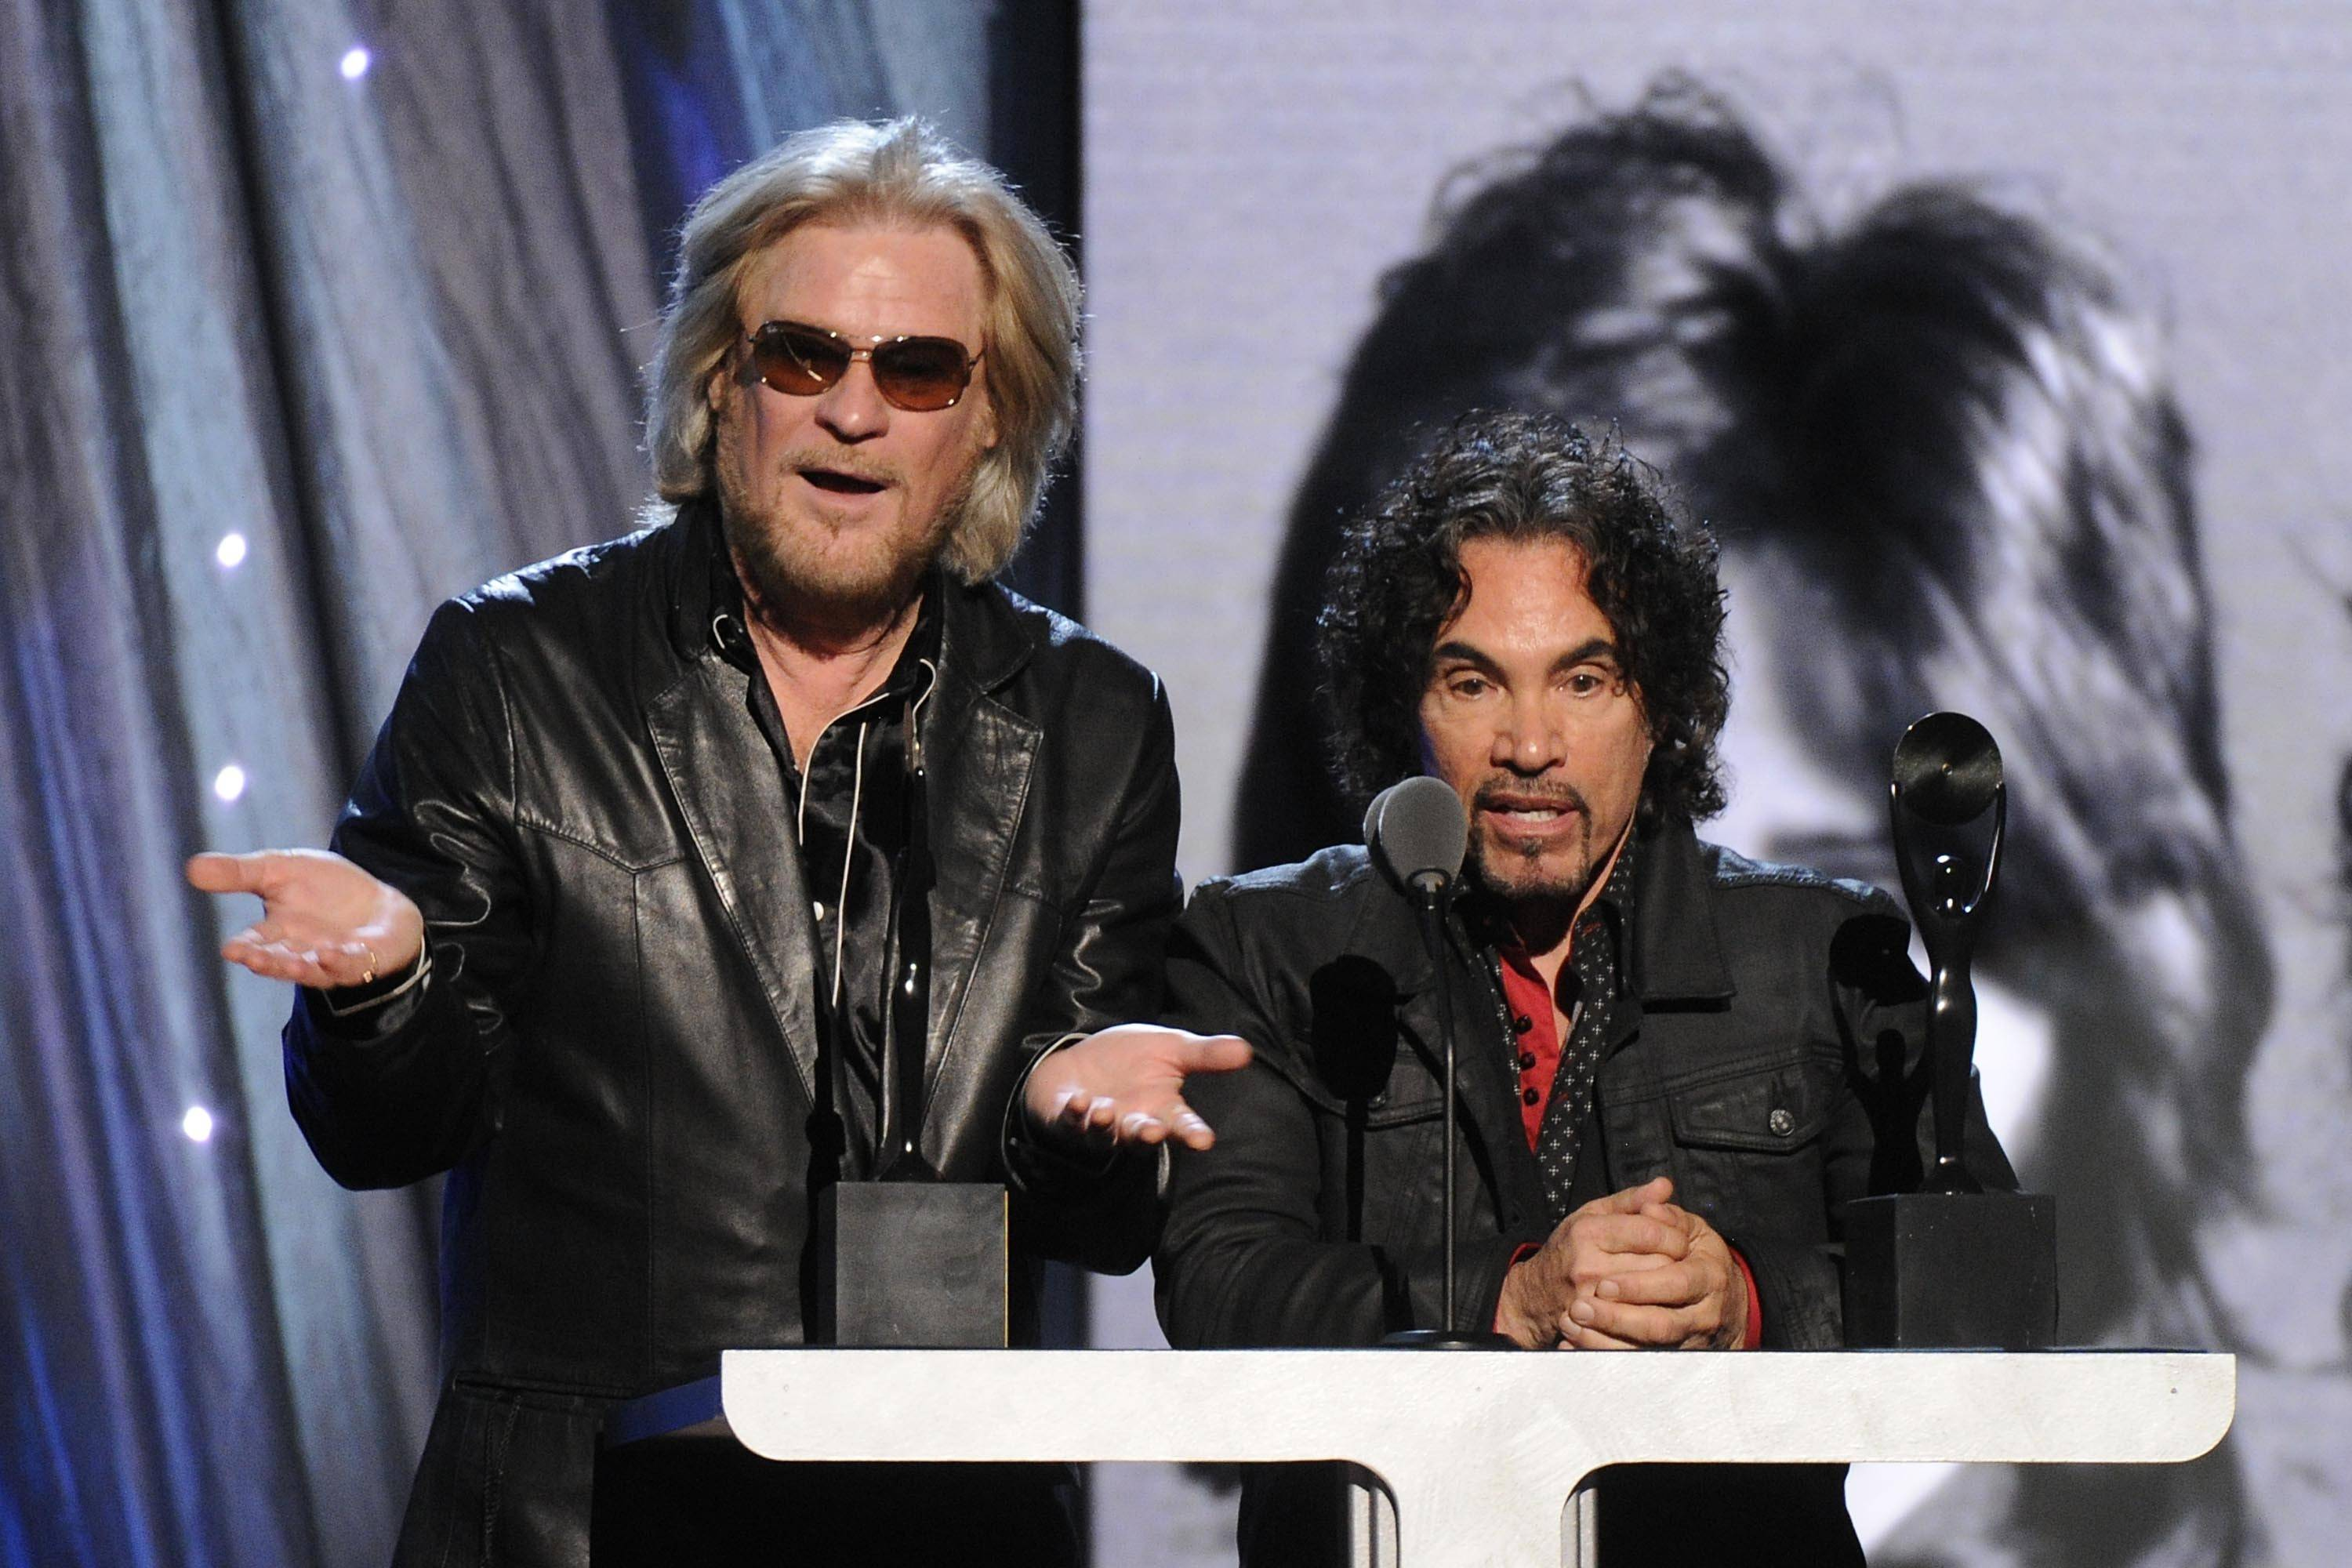 Hall of Fame Inductees, Hall and Oates, Daryl Hall and John Oates speak at the 2014 Rock and Roll Hall of Fame Induction Ceremony on Thursday.